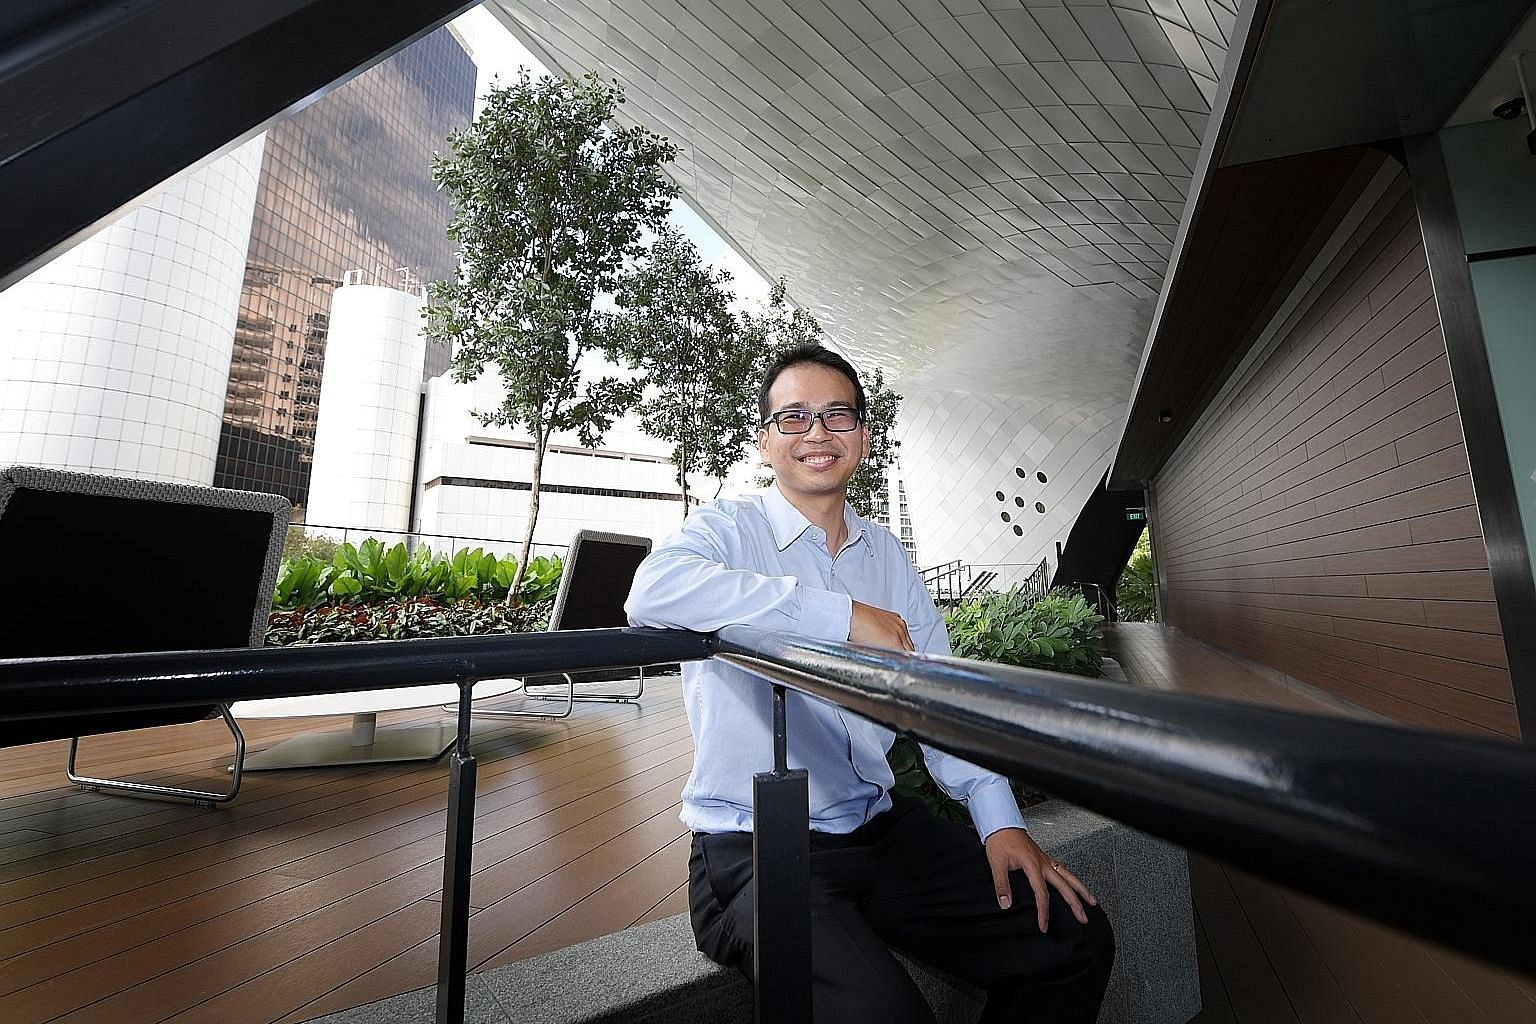 """Mr Aaron Foong at The Scotts Tower. The design of the condominium with an elevated floor plate frees up space on the lower storeys for an """"open view"""" and room for residents to move around, he says."""